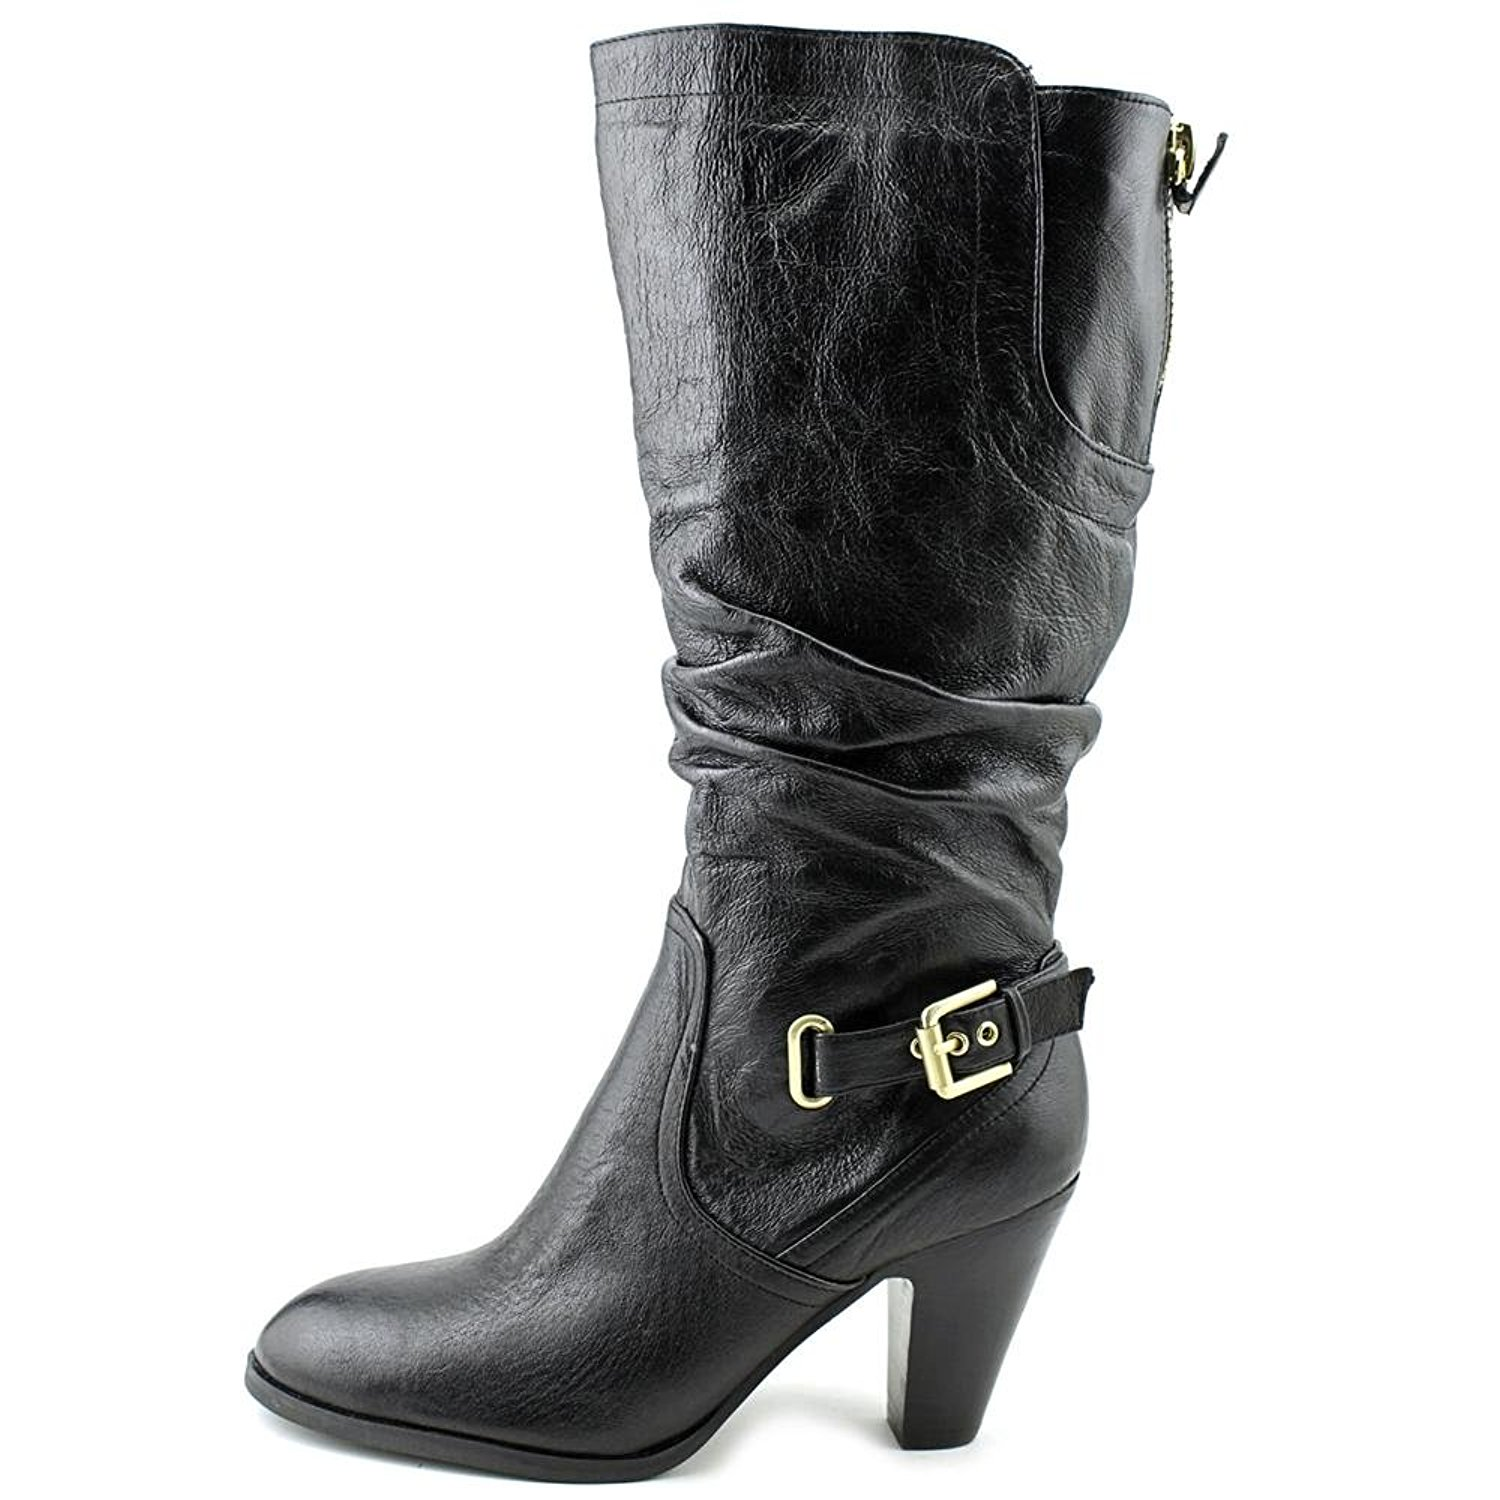 GUESS Womens Mallay Leather Almond Toe MidCalf Fashion Boots Black Size 11.0